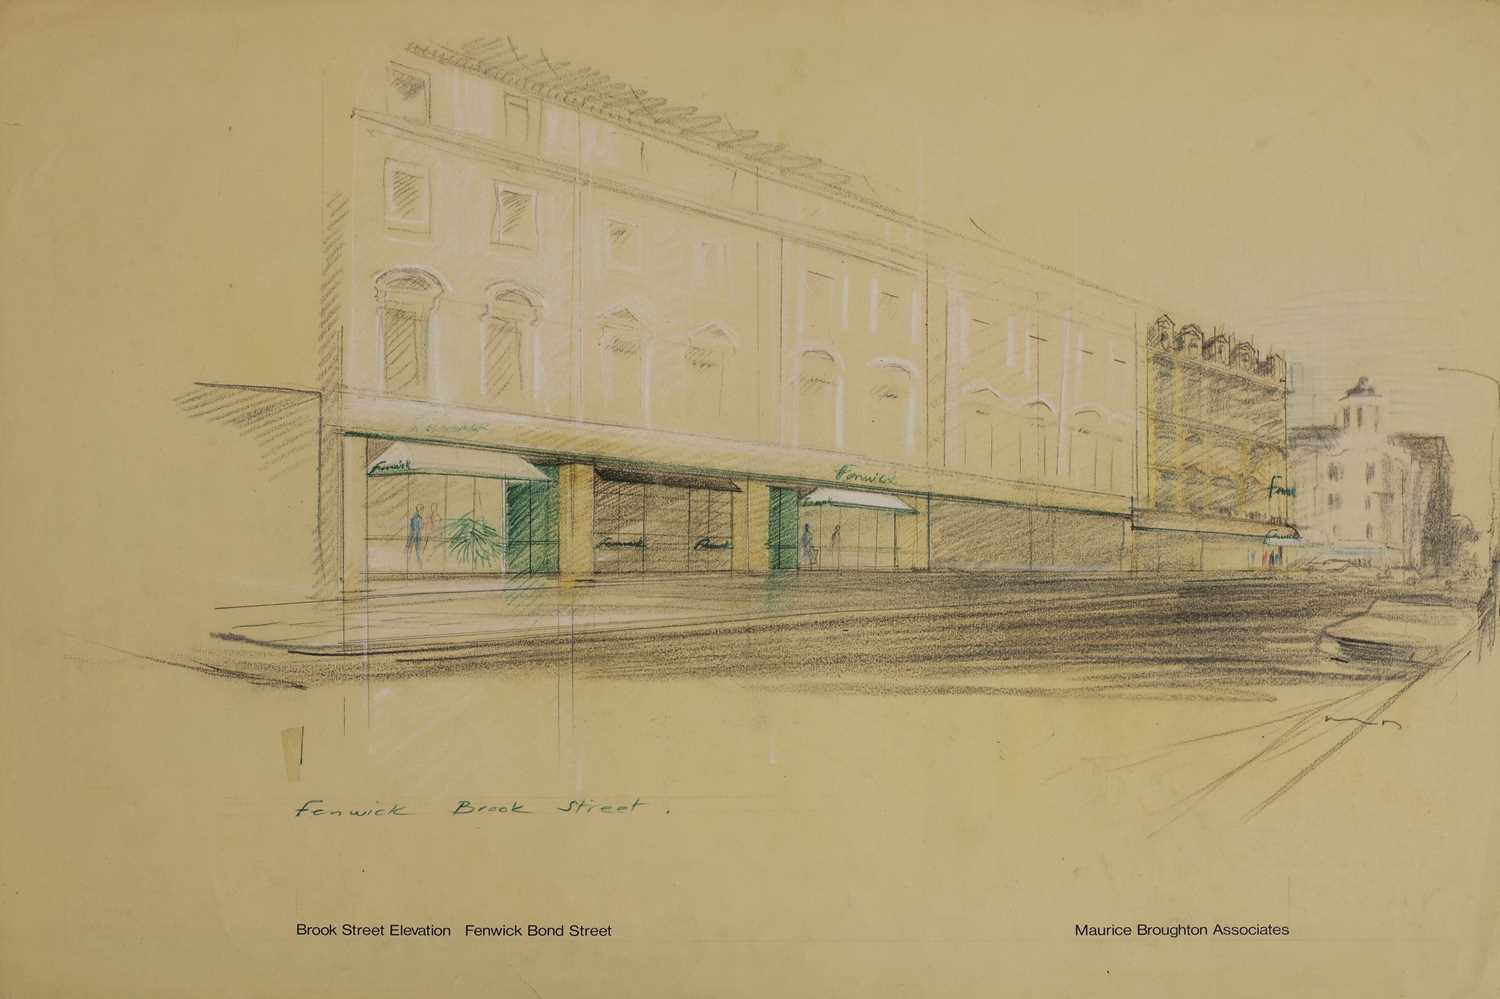 Maurice Broughton Associates, - Image 10 of 10